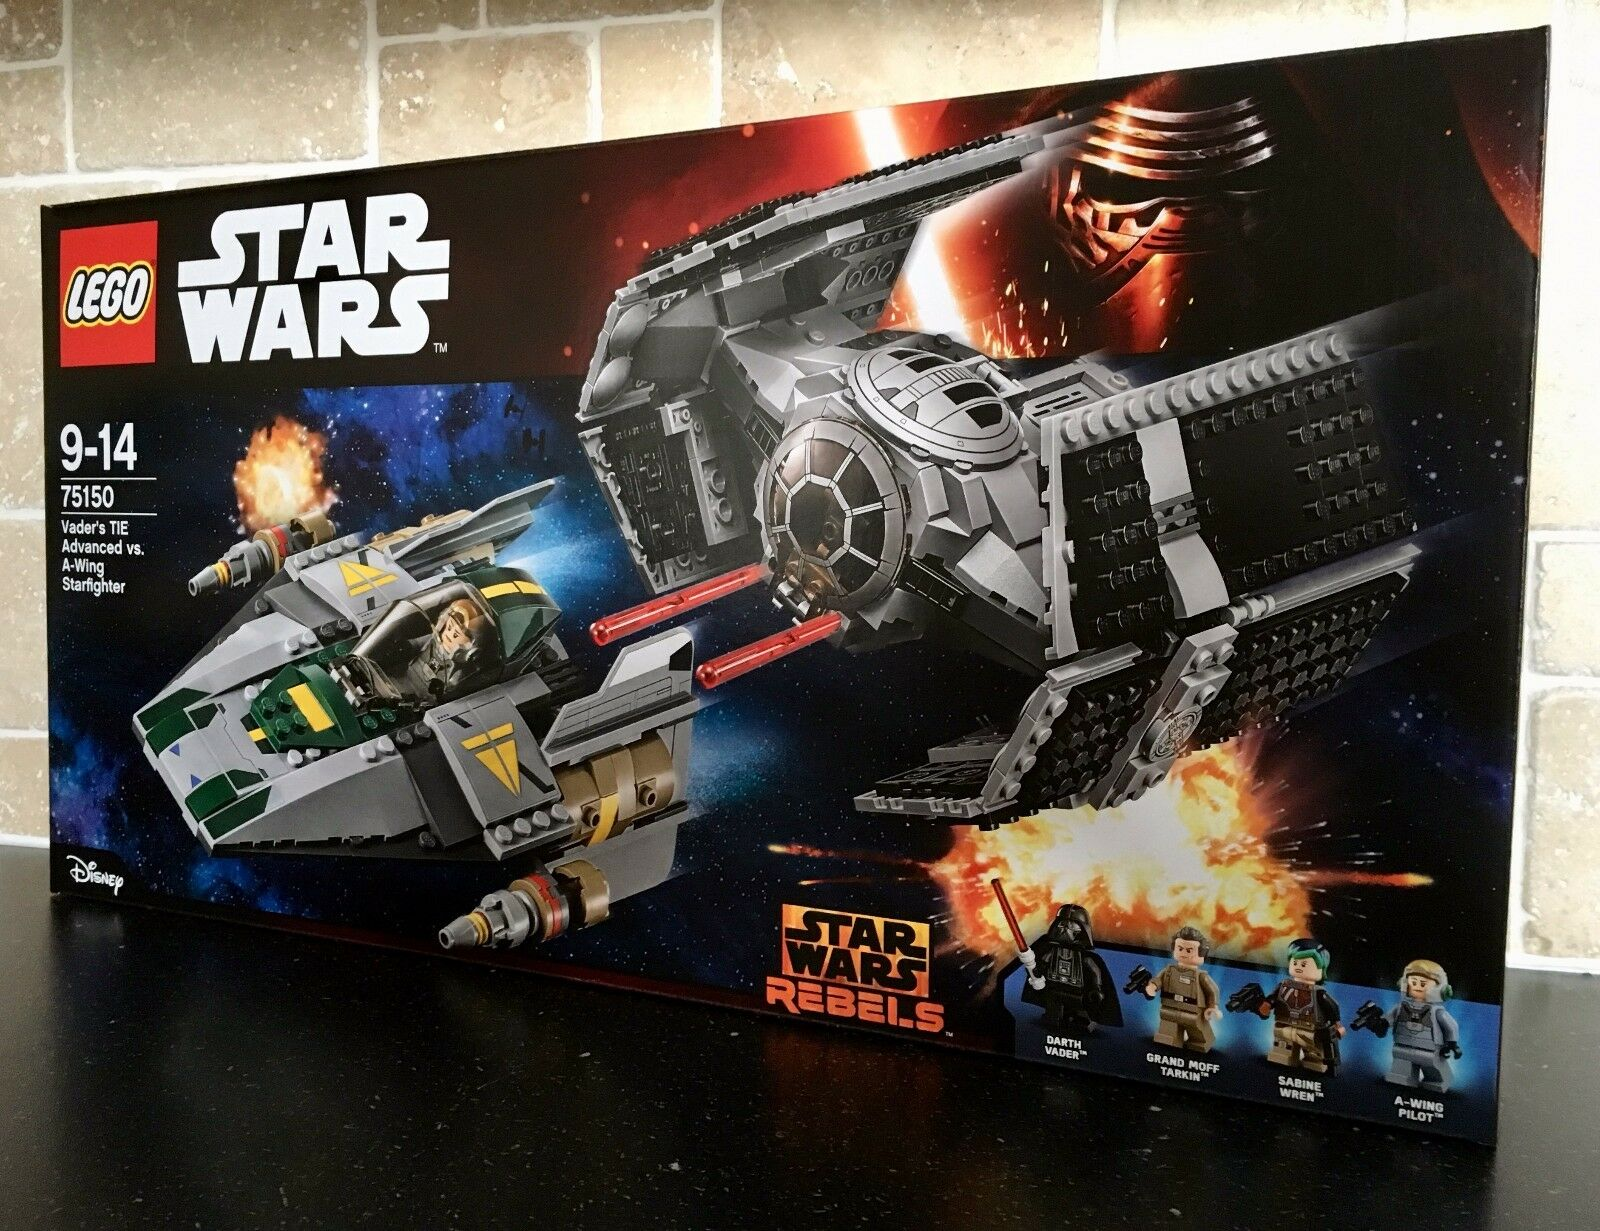 LEGO STAR WARS - 75150 Vader's TIE Advanced Vs. A-Wing Brand New In Sealed Box